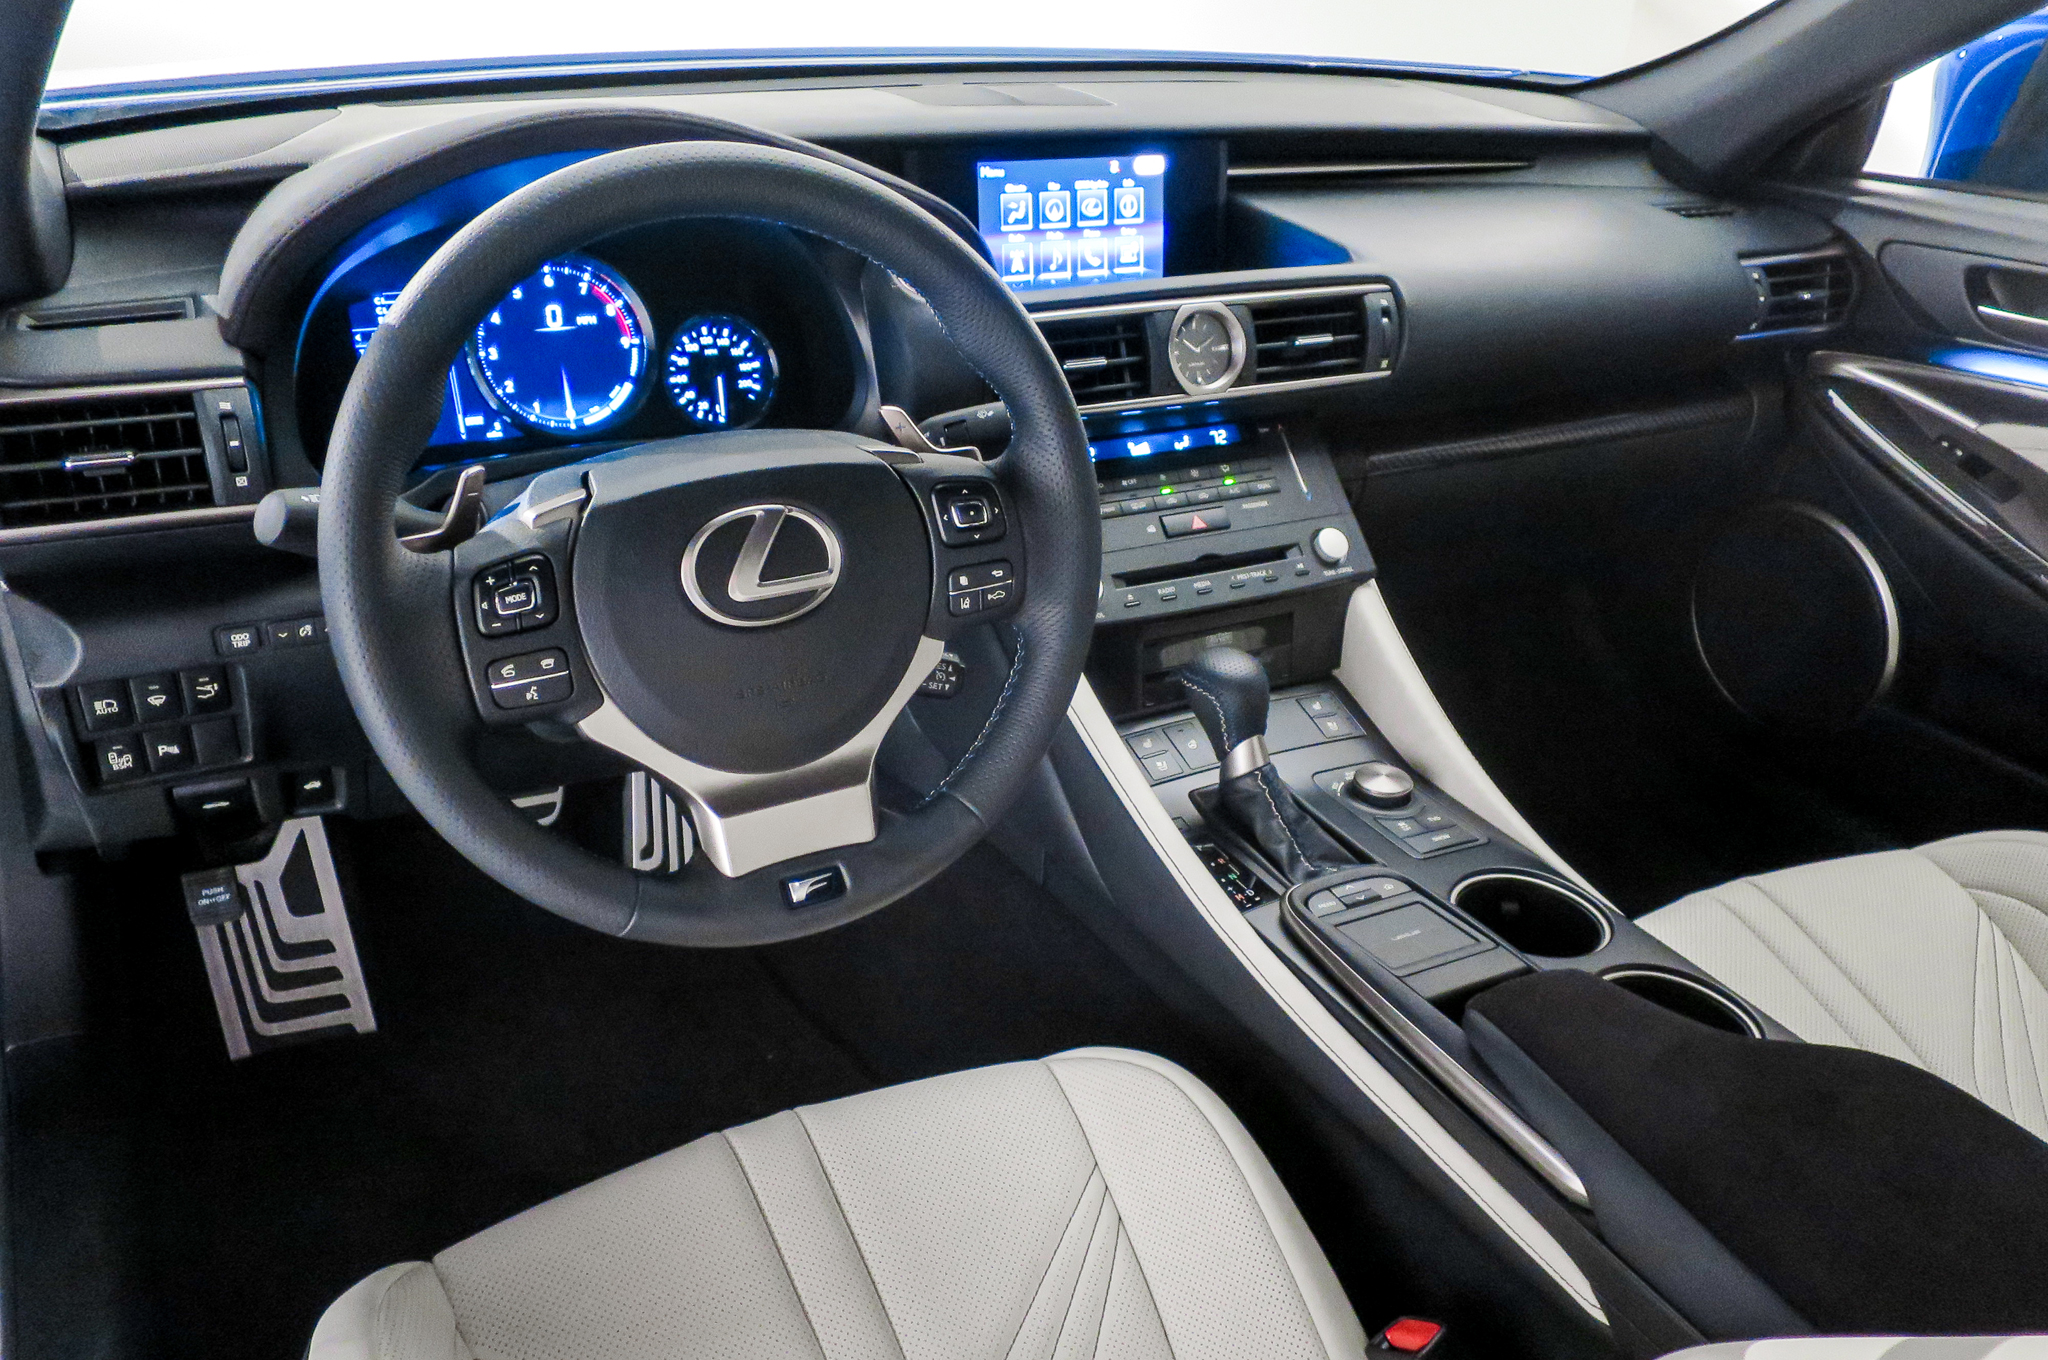 2015 Lexus RC F Cockpit and Dashboard